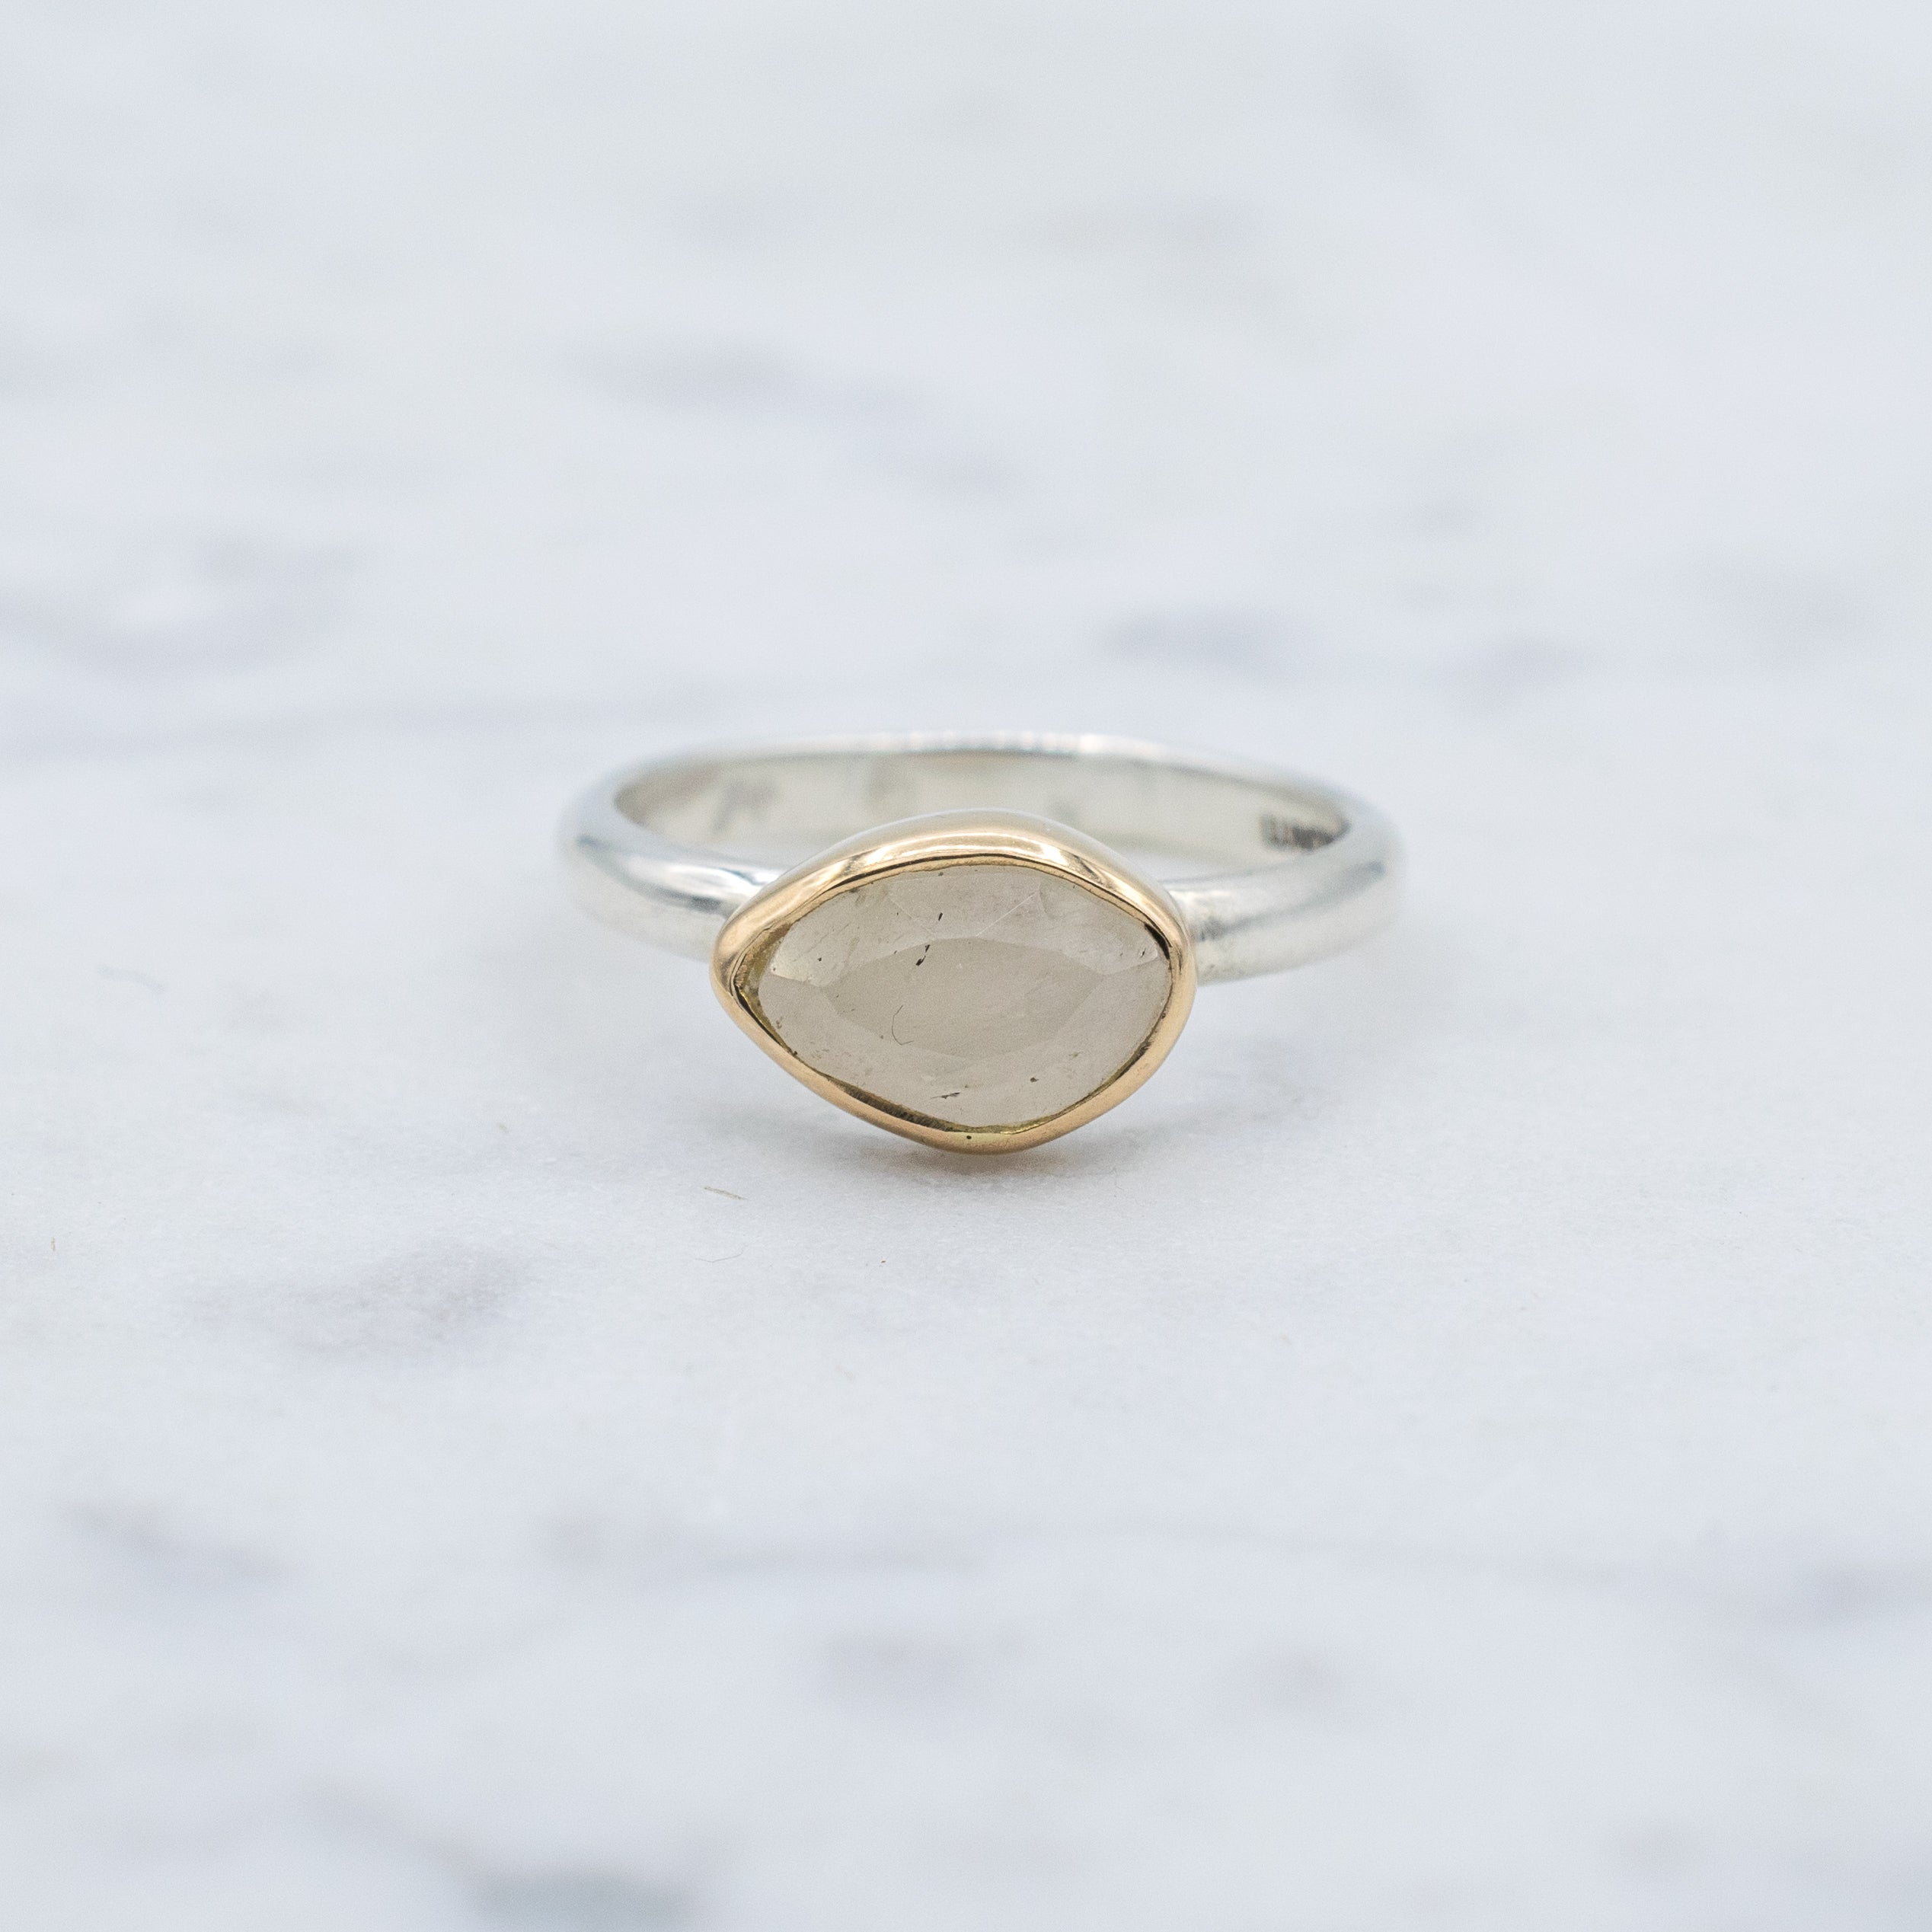 14K Yellow gold, rose cut sapphire and sterling silver ring